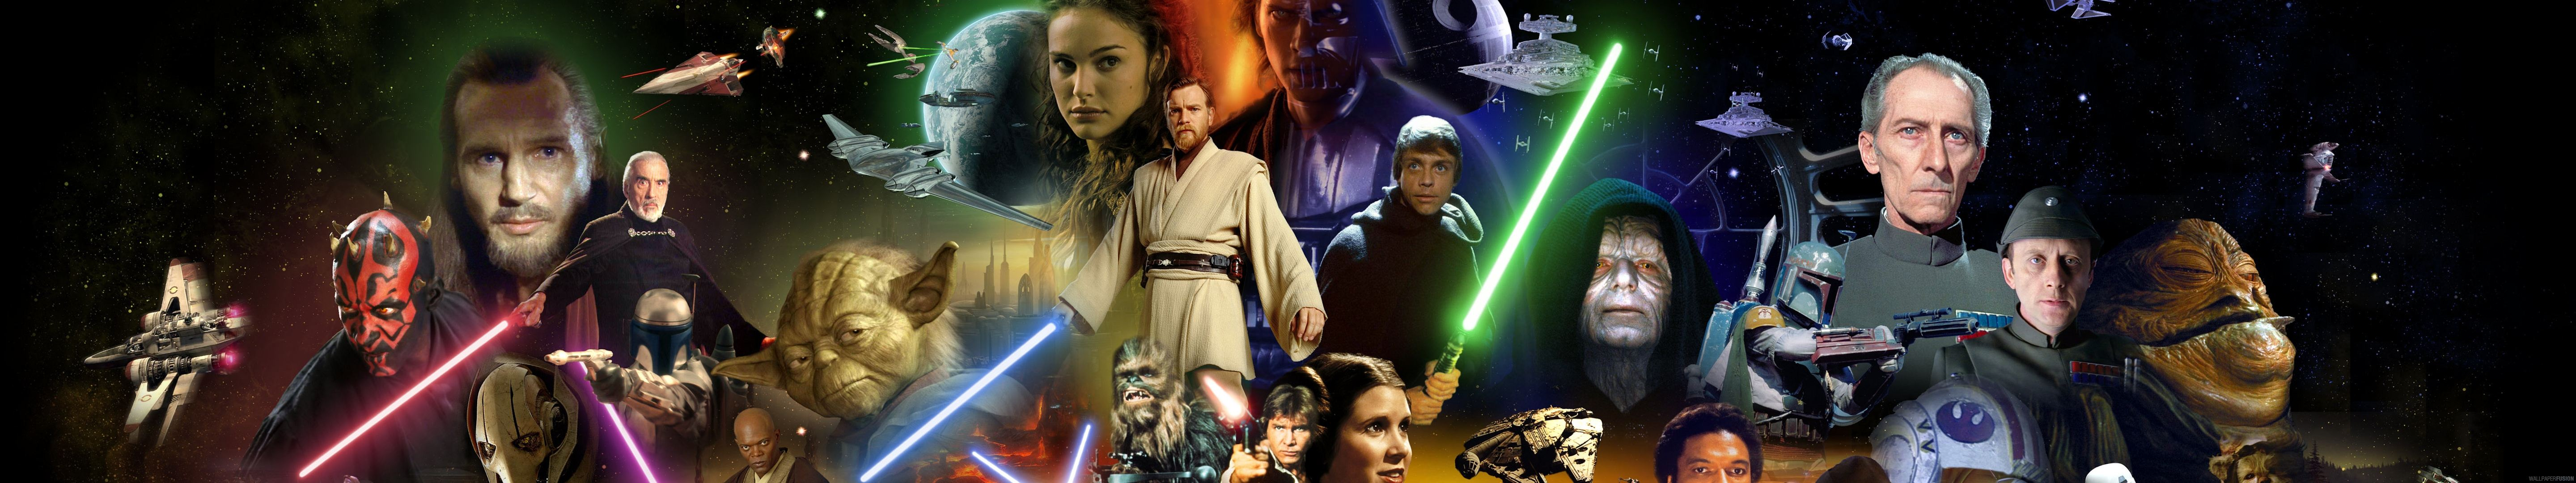 44 Star Wars 3 Monitor Wallpaper On Wallpapersafari